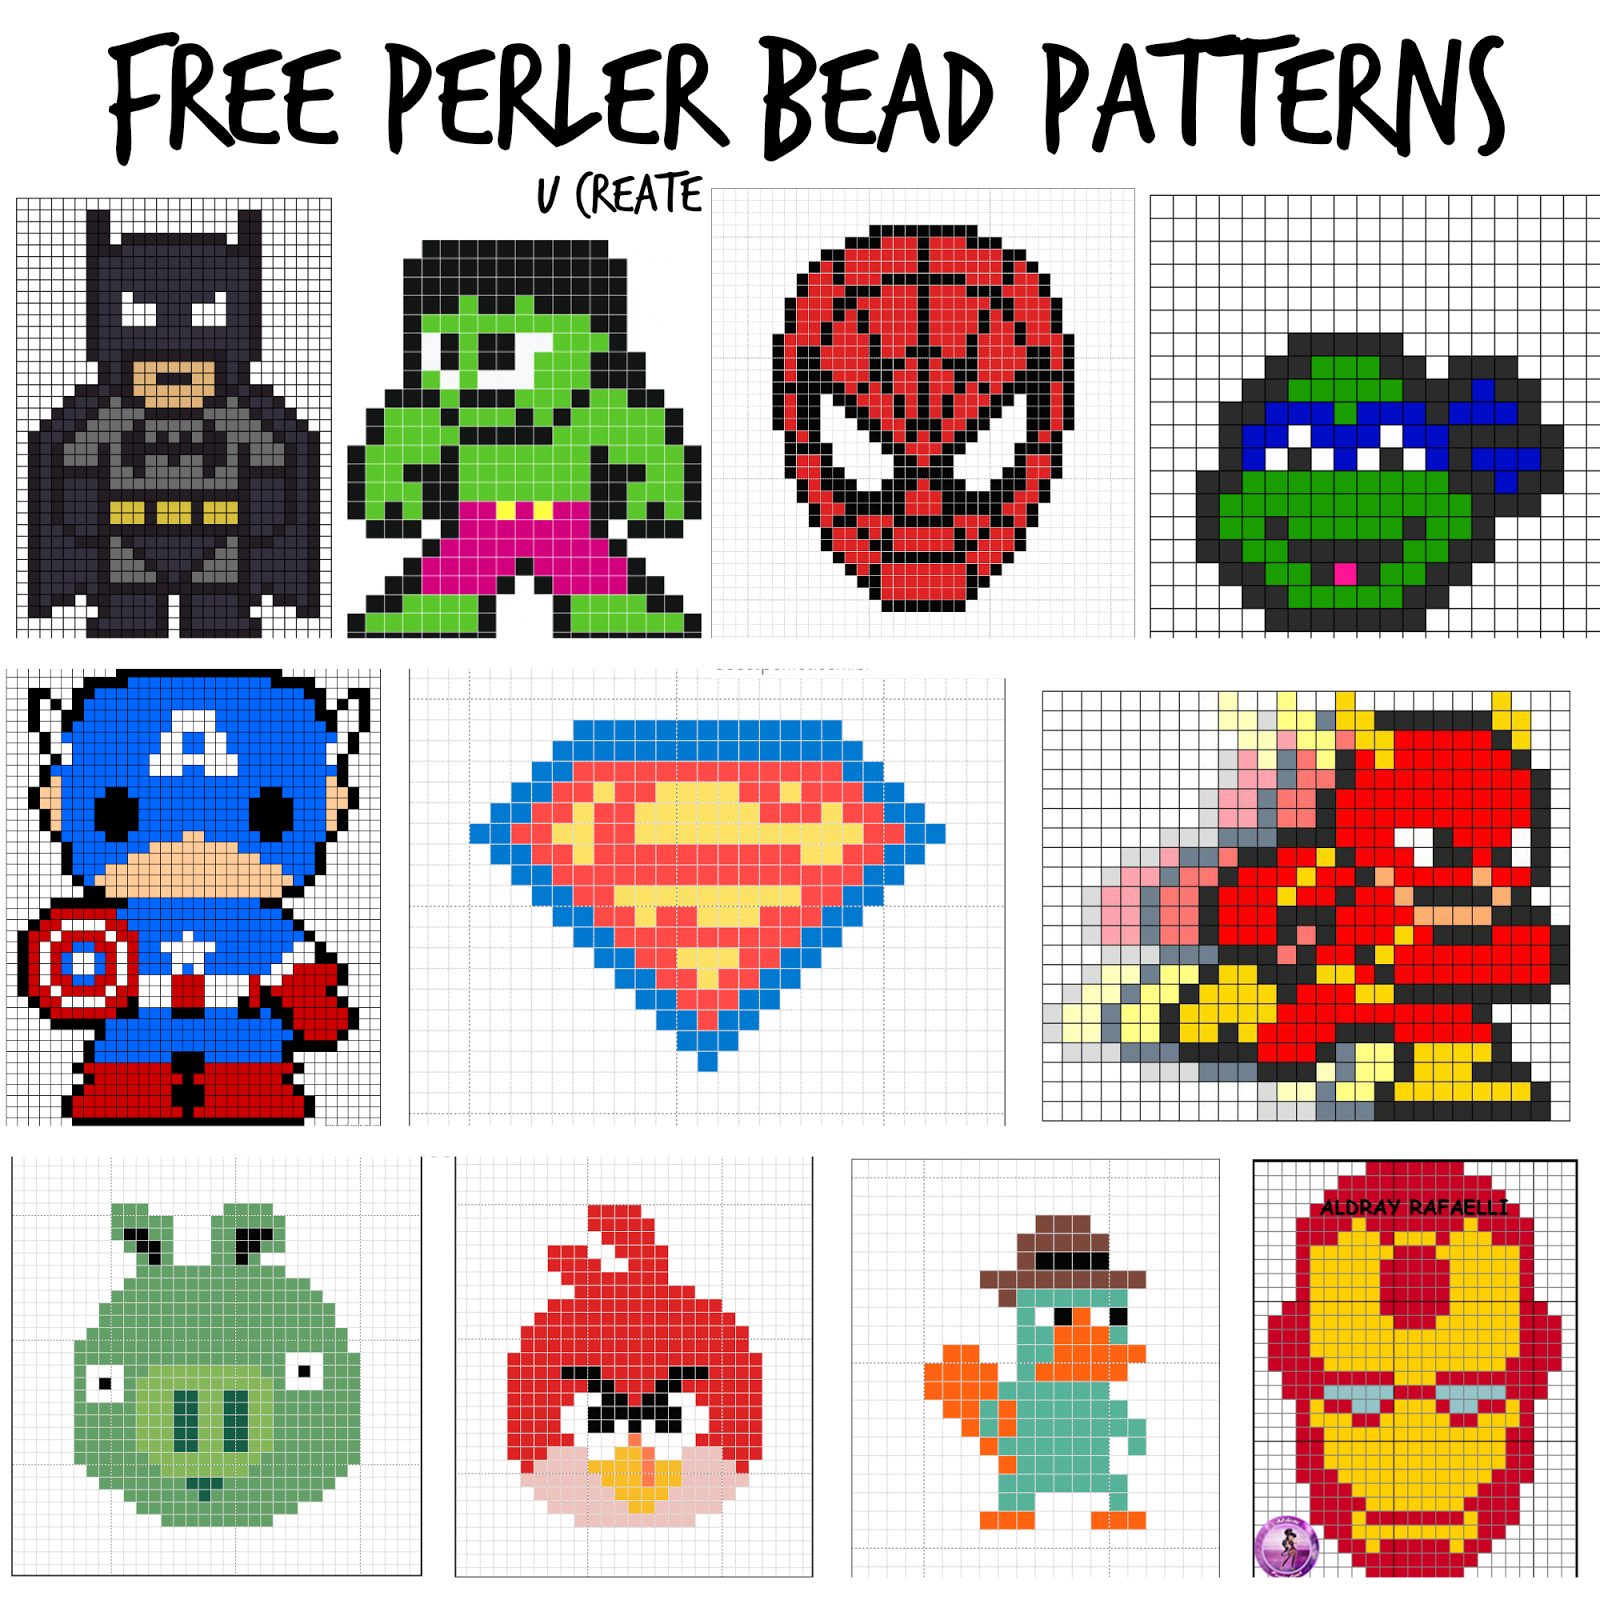 It's just a picture of Modest Free Perler Bead Patterns